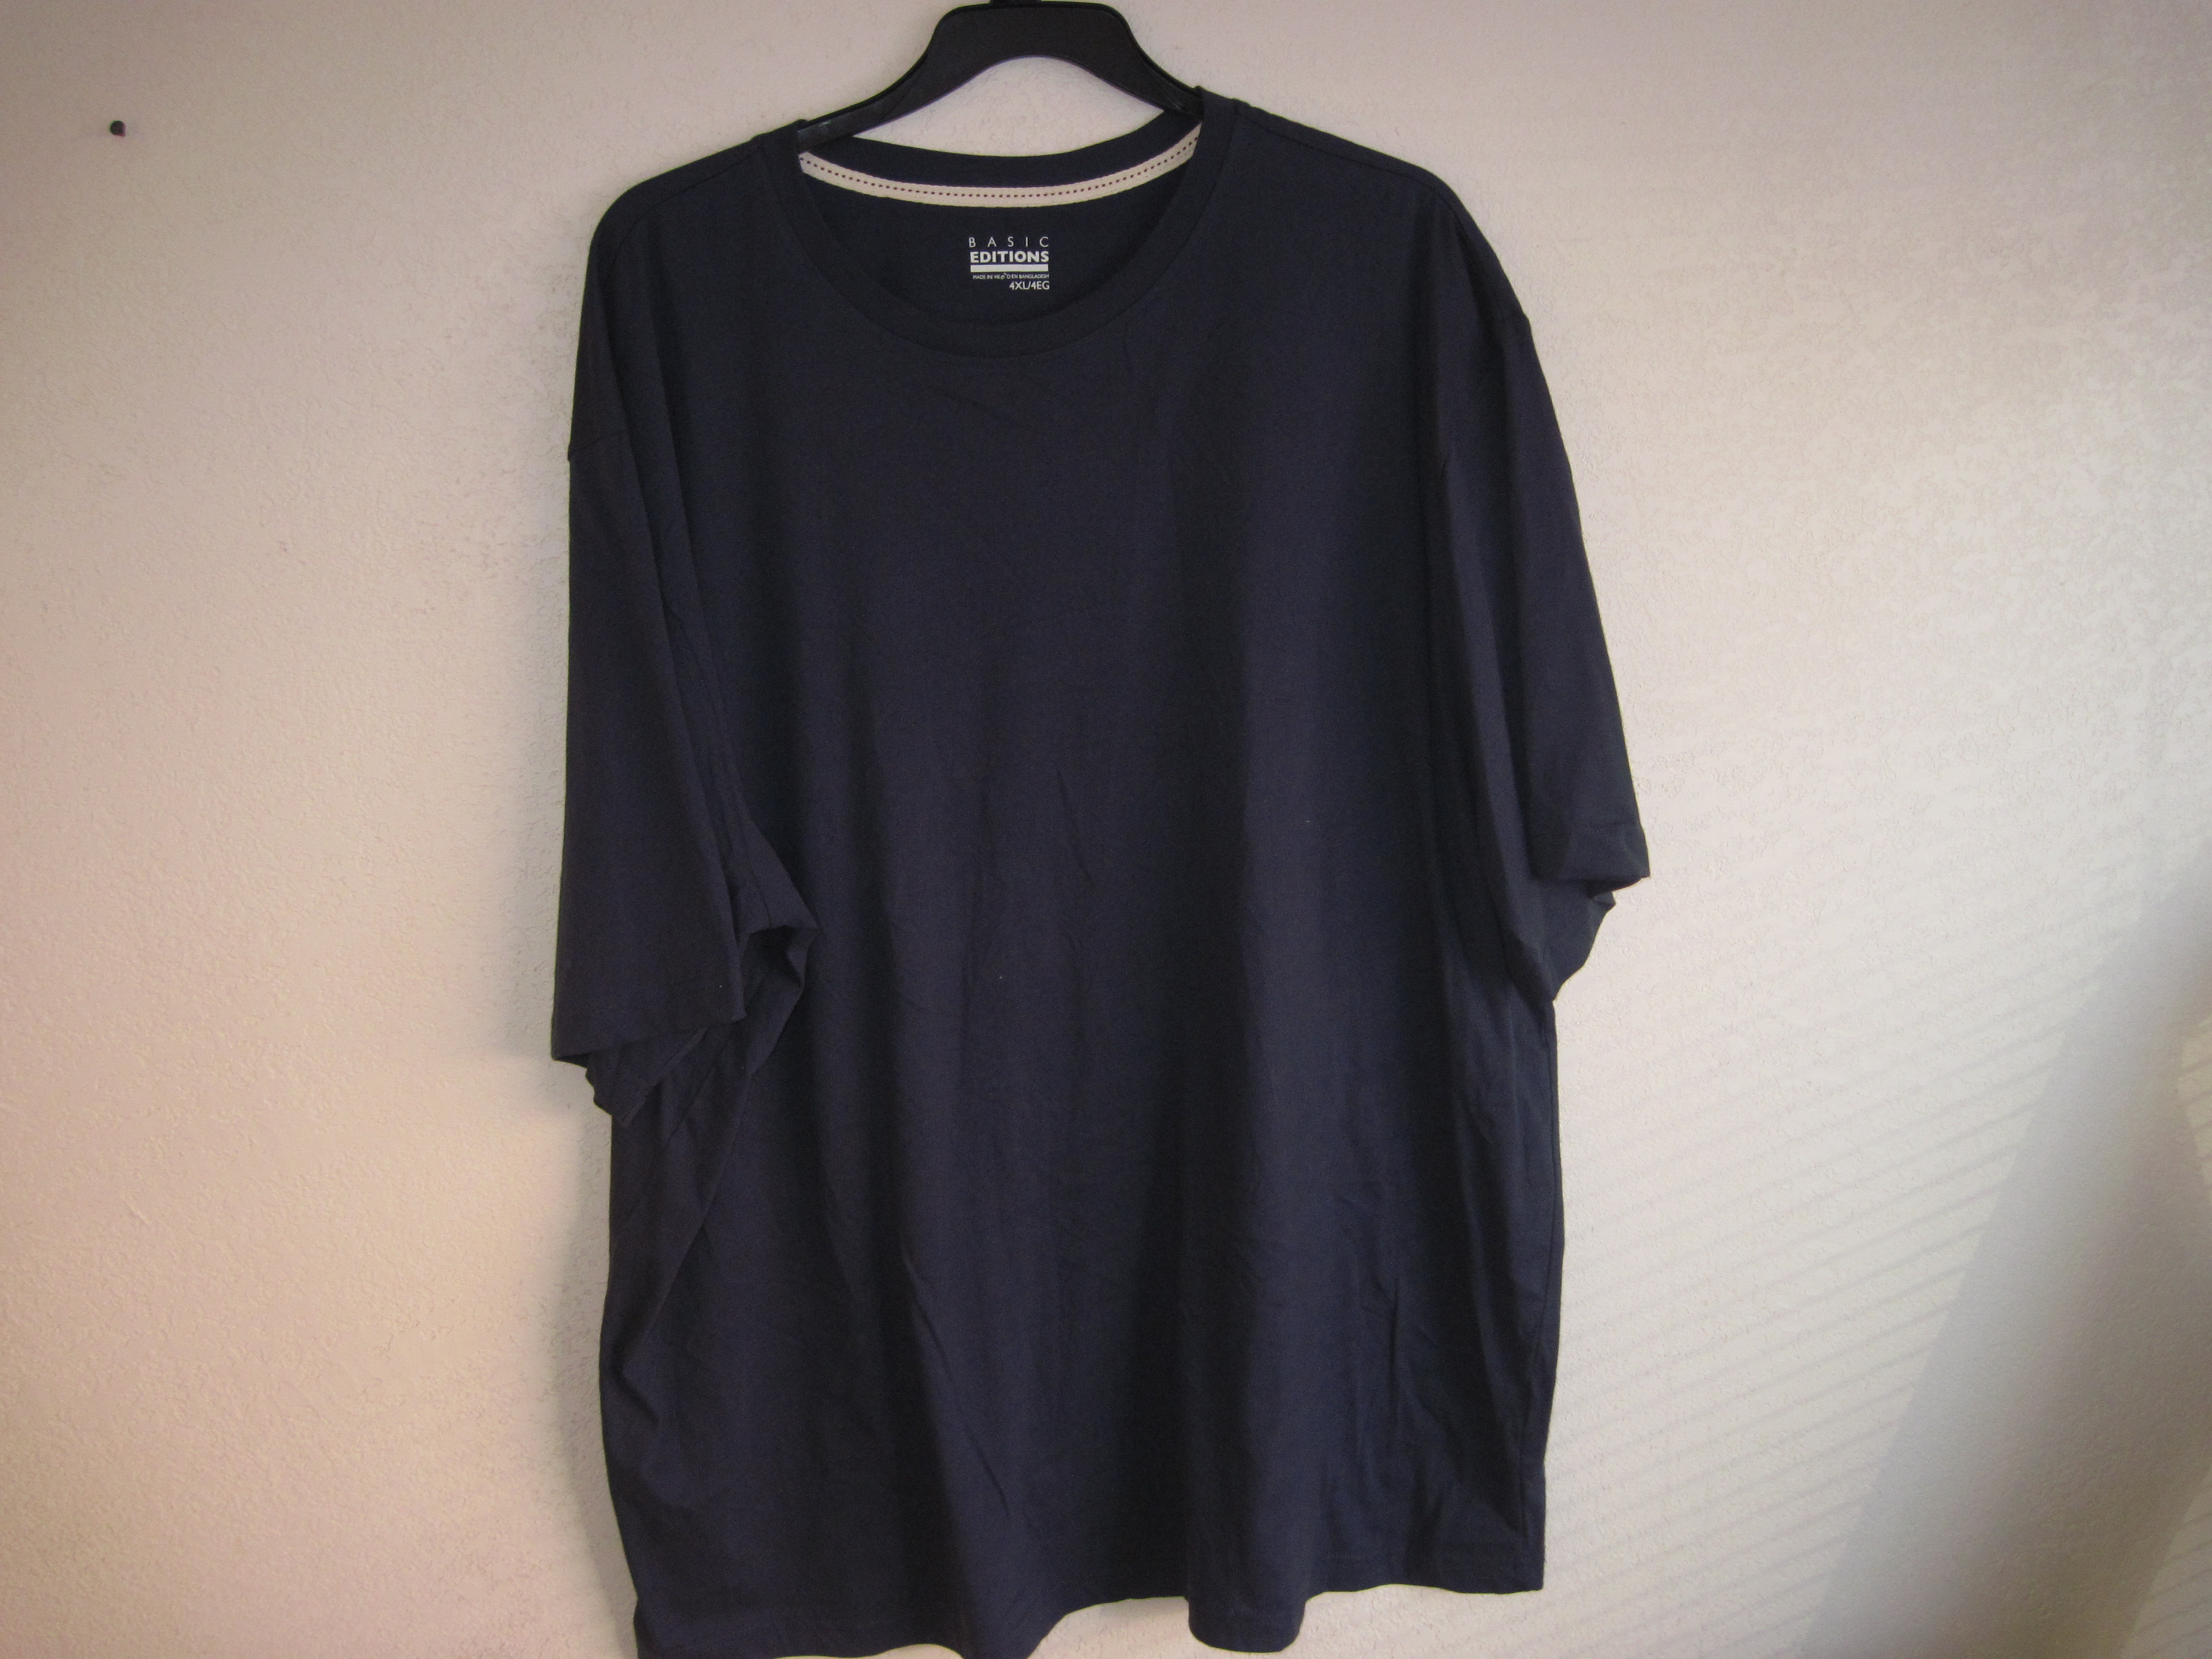 Basic Editions Sz 4XL Short Sleeve T-Shirt dark blue